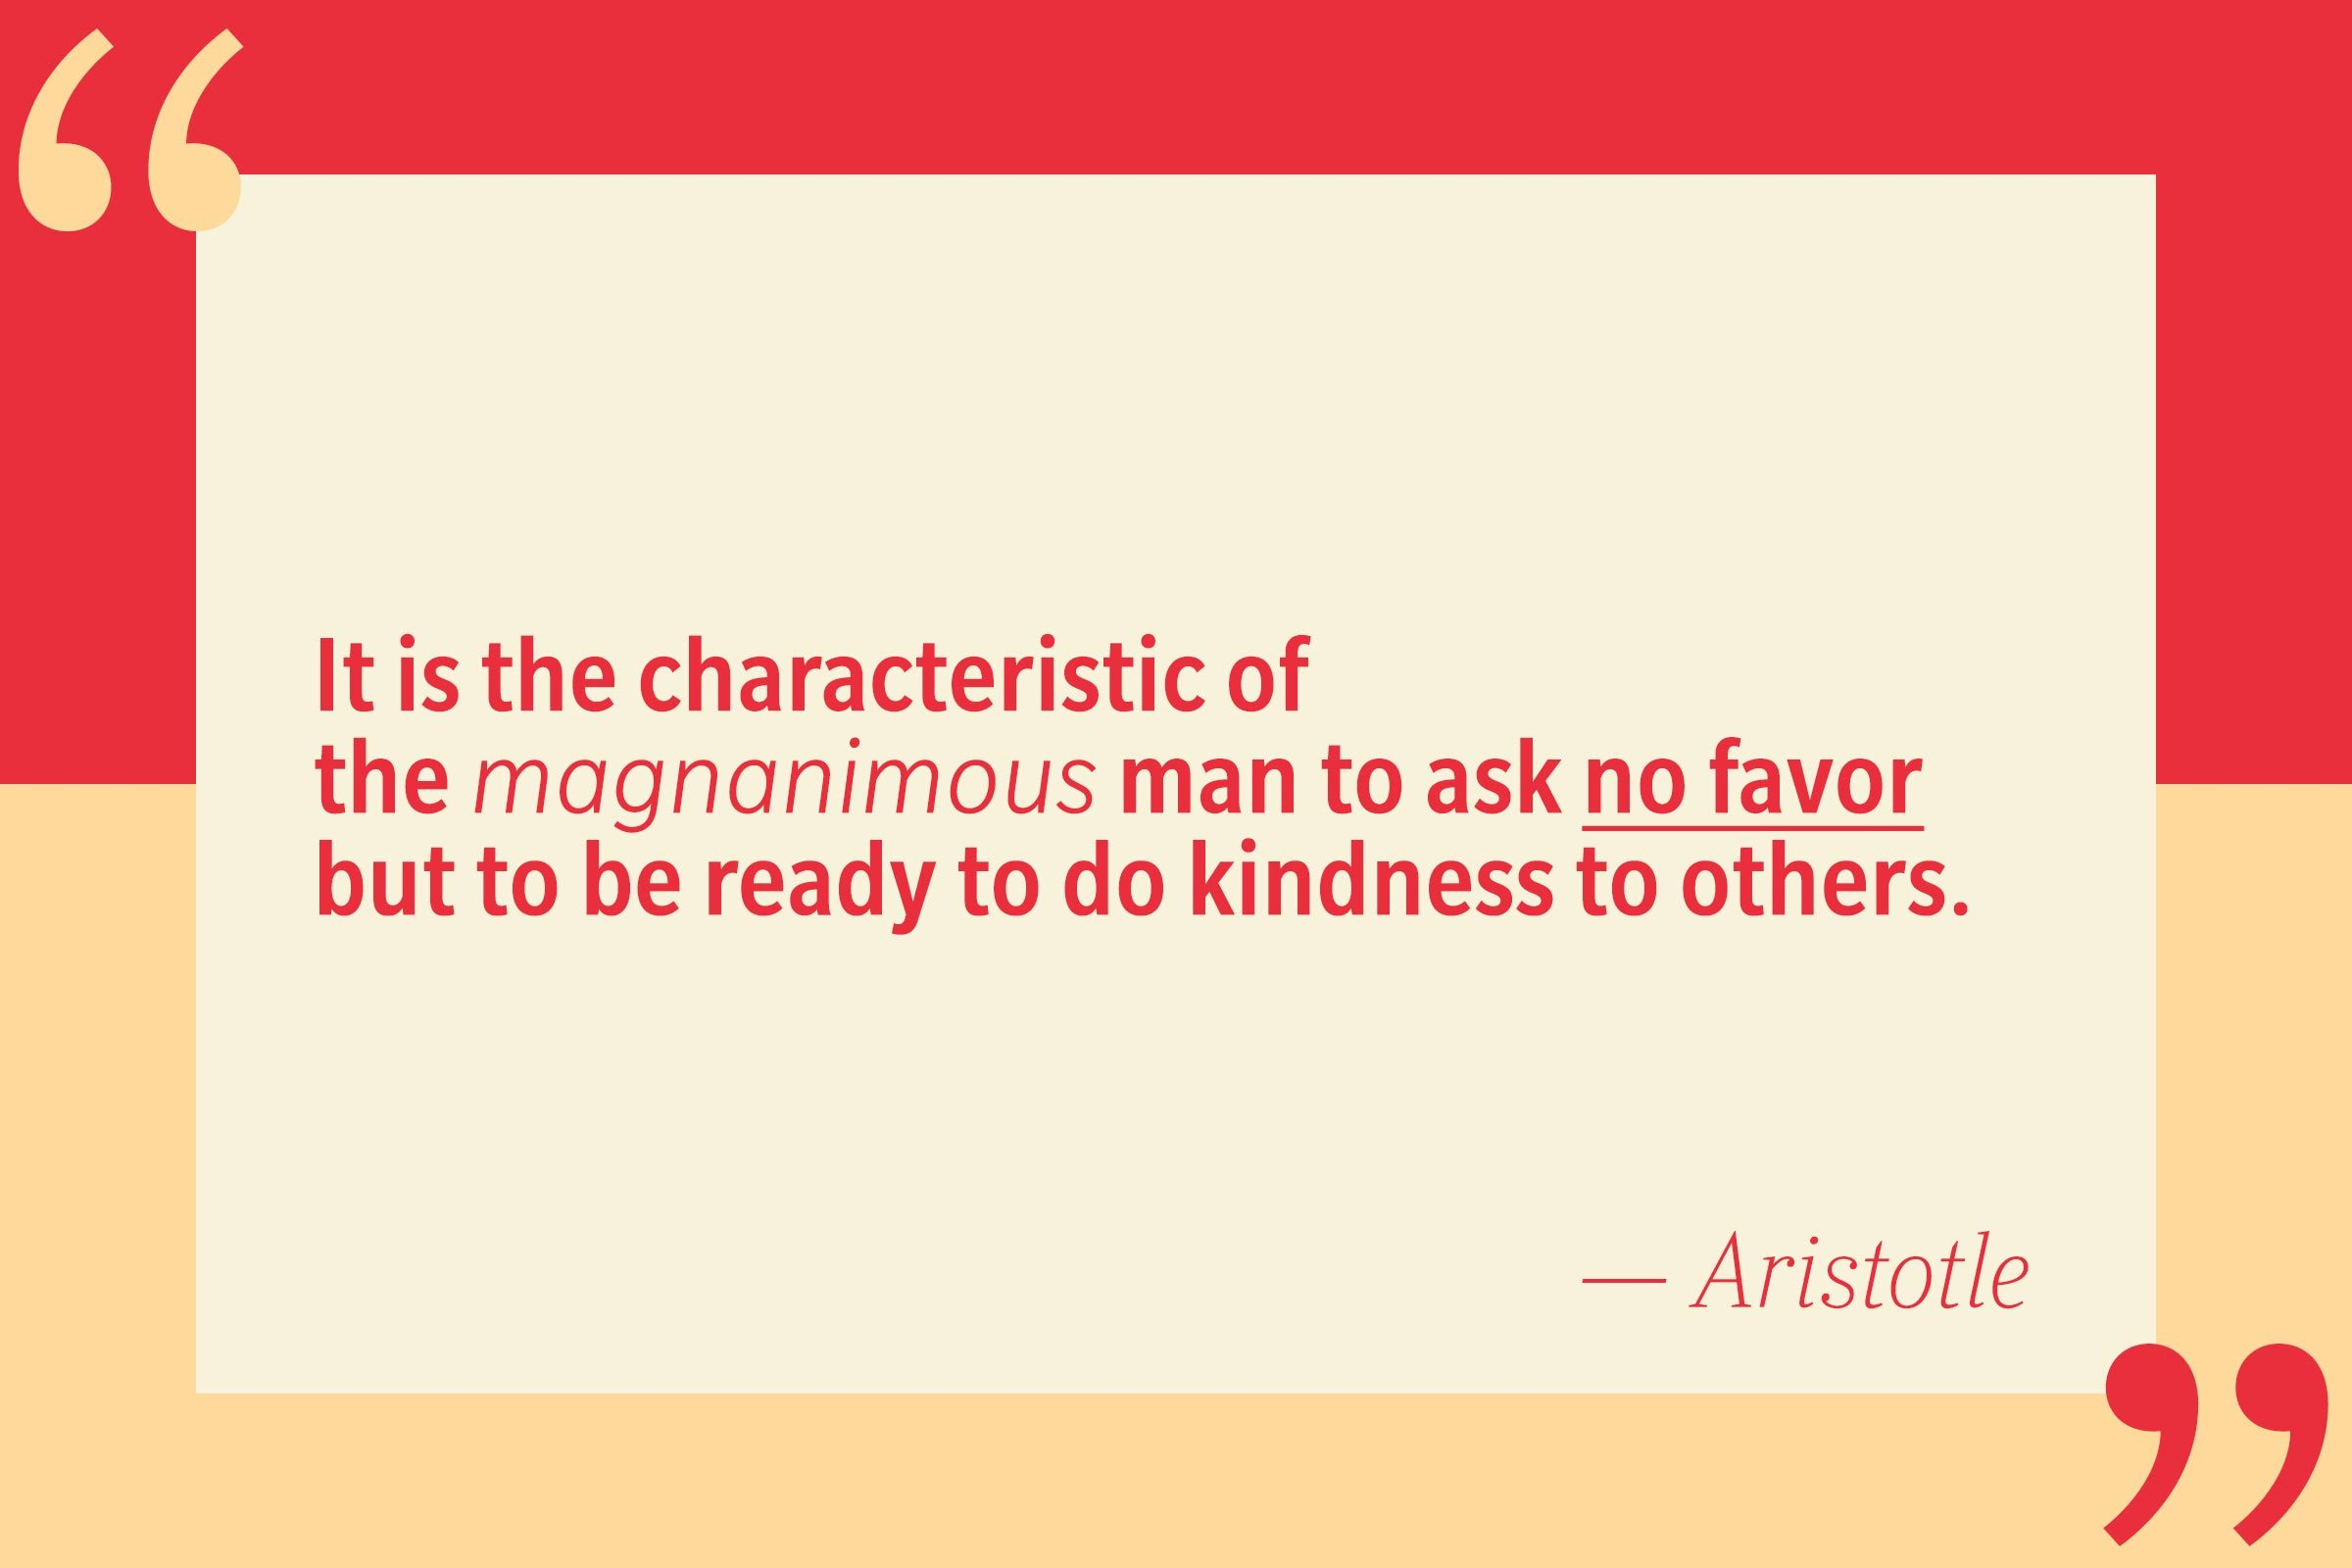 It is the characteristic of the magnanimous man to ask no favor but to be ready to do kindness to others. — Aristotle